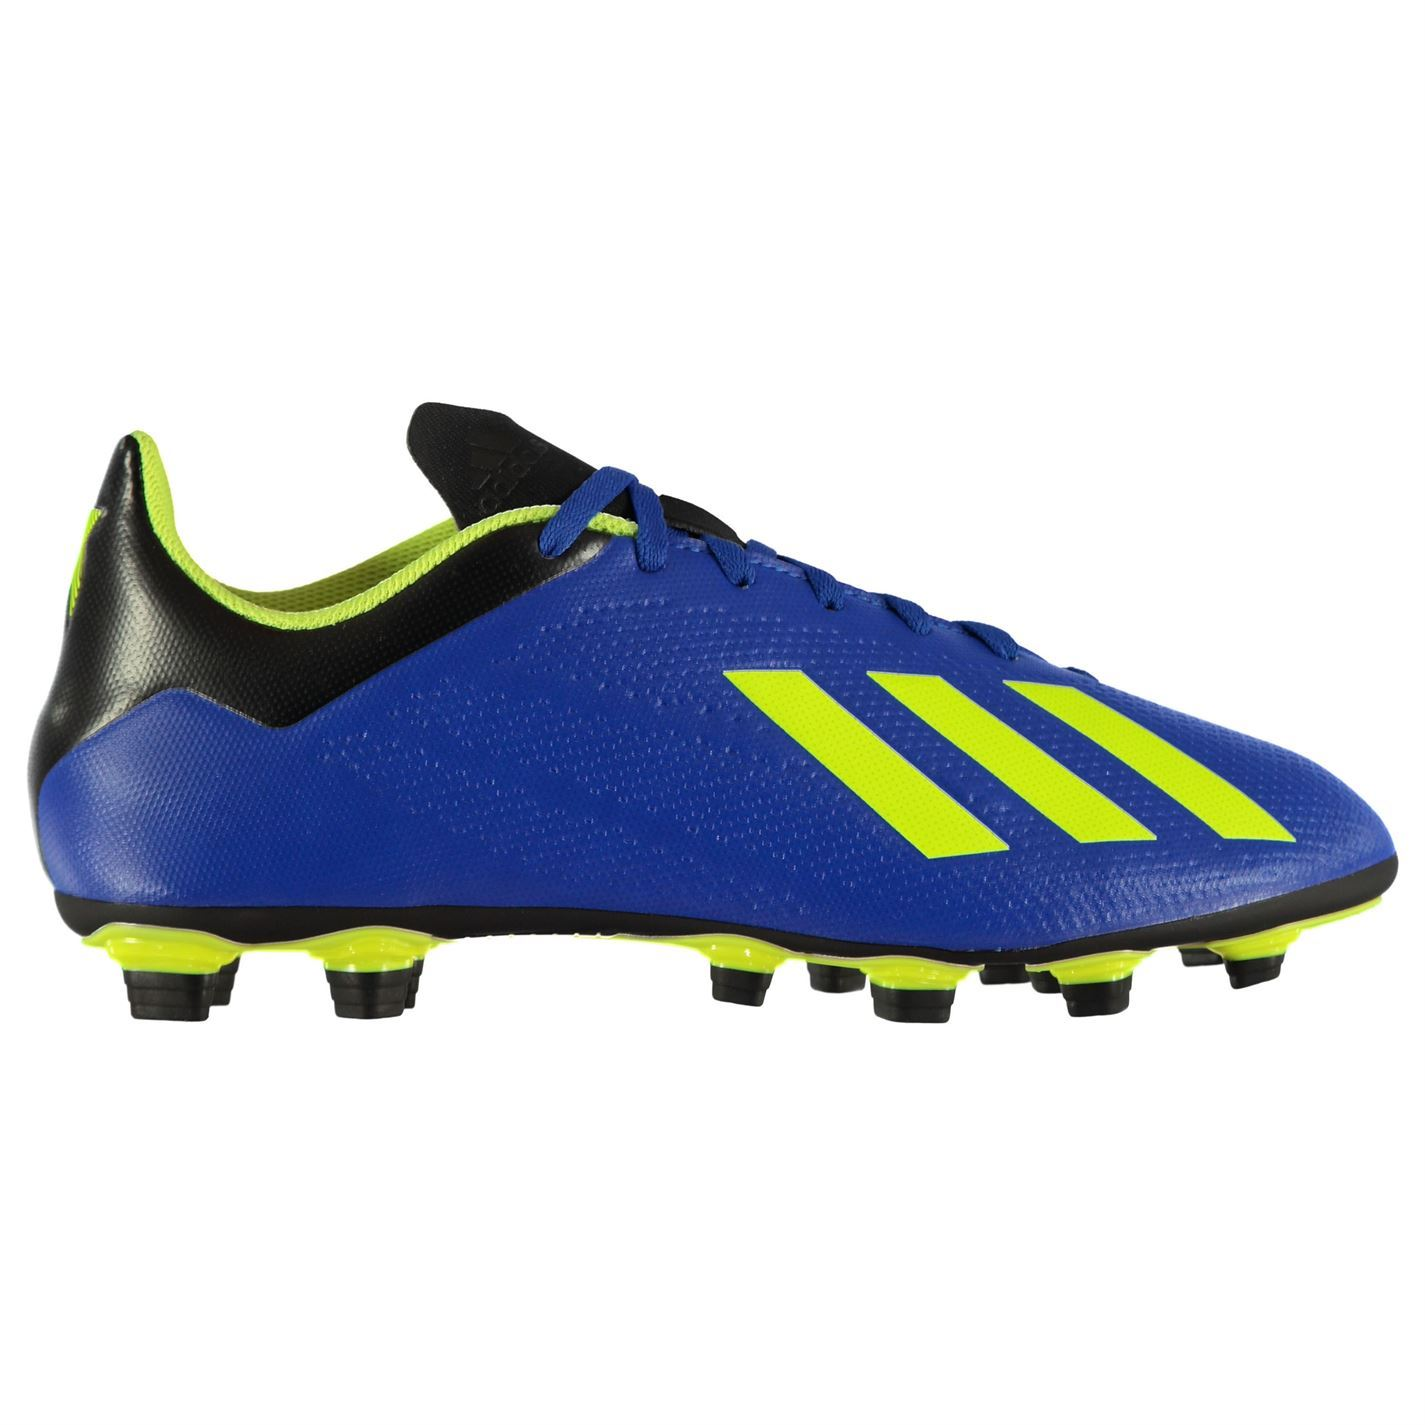 9158153d579 adidas X 18.4 FG Firm Ground Football Boots Mens Blue Soccer Shoes Cleats